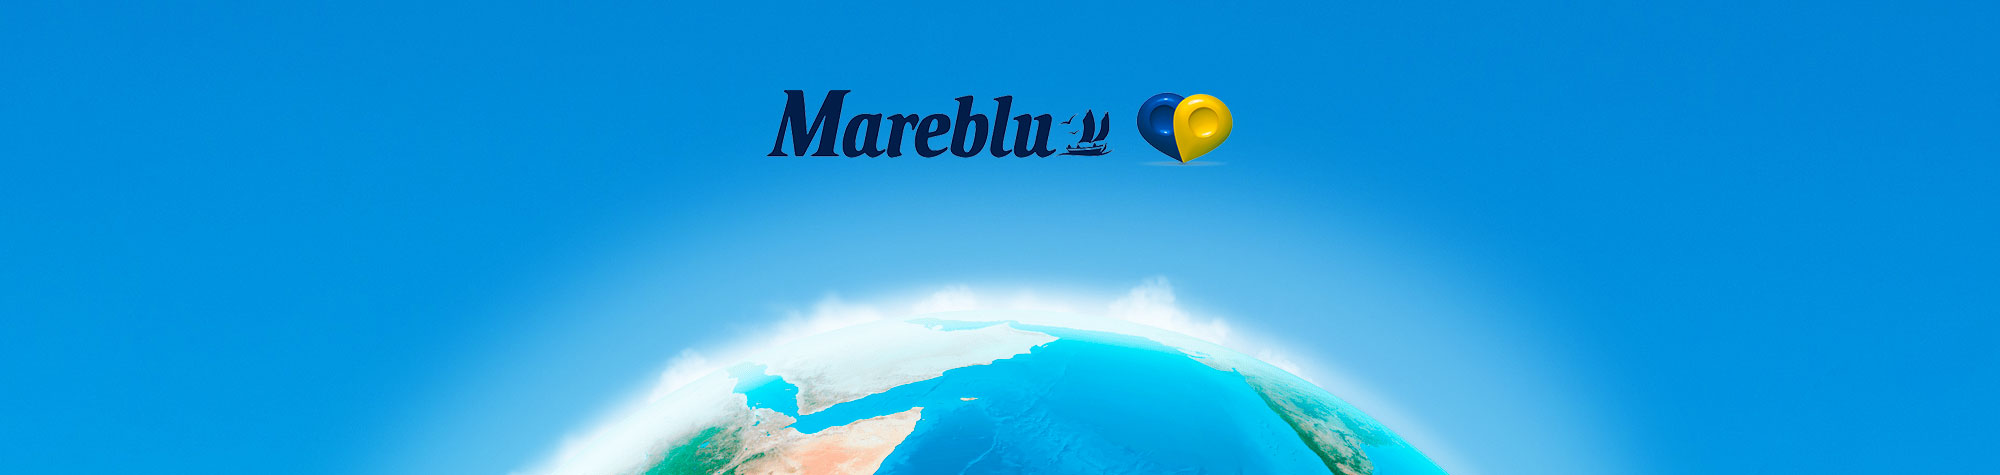 Le media relations di Mareblu a TwentyTwenty